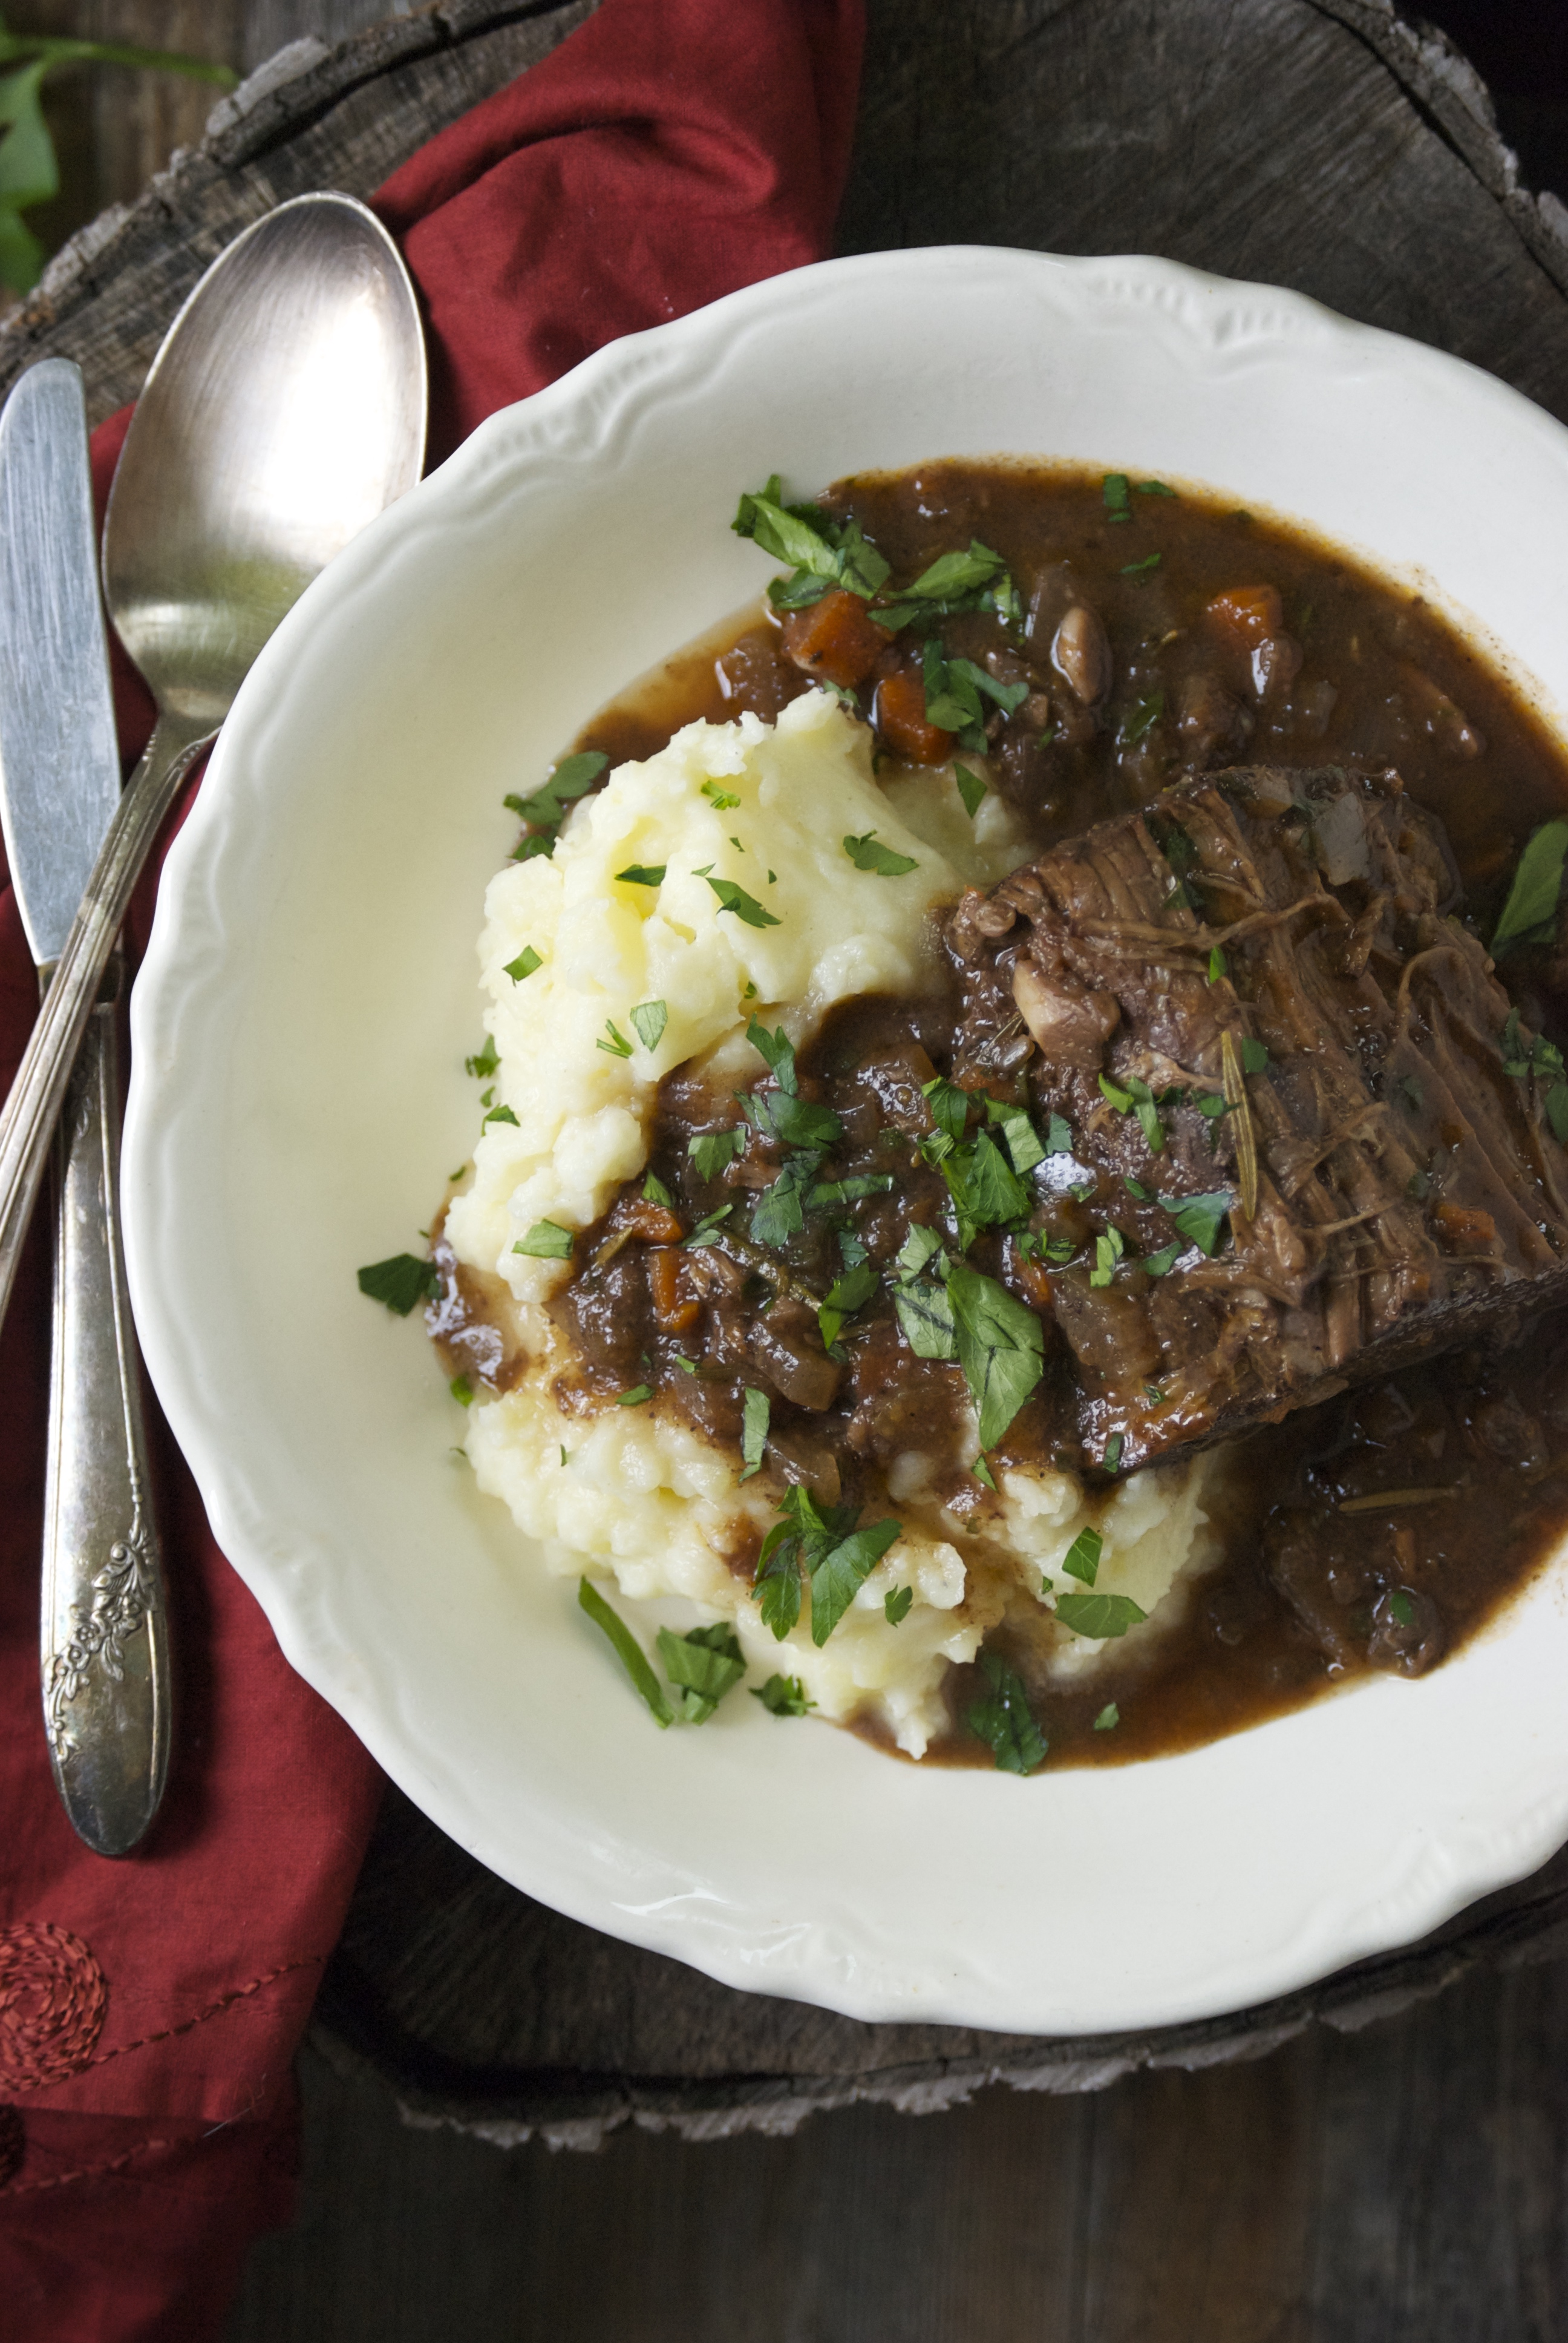 Braised Beef Roast With Red Wine And Rosemary Relishing It